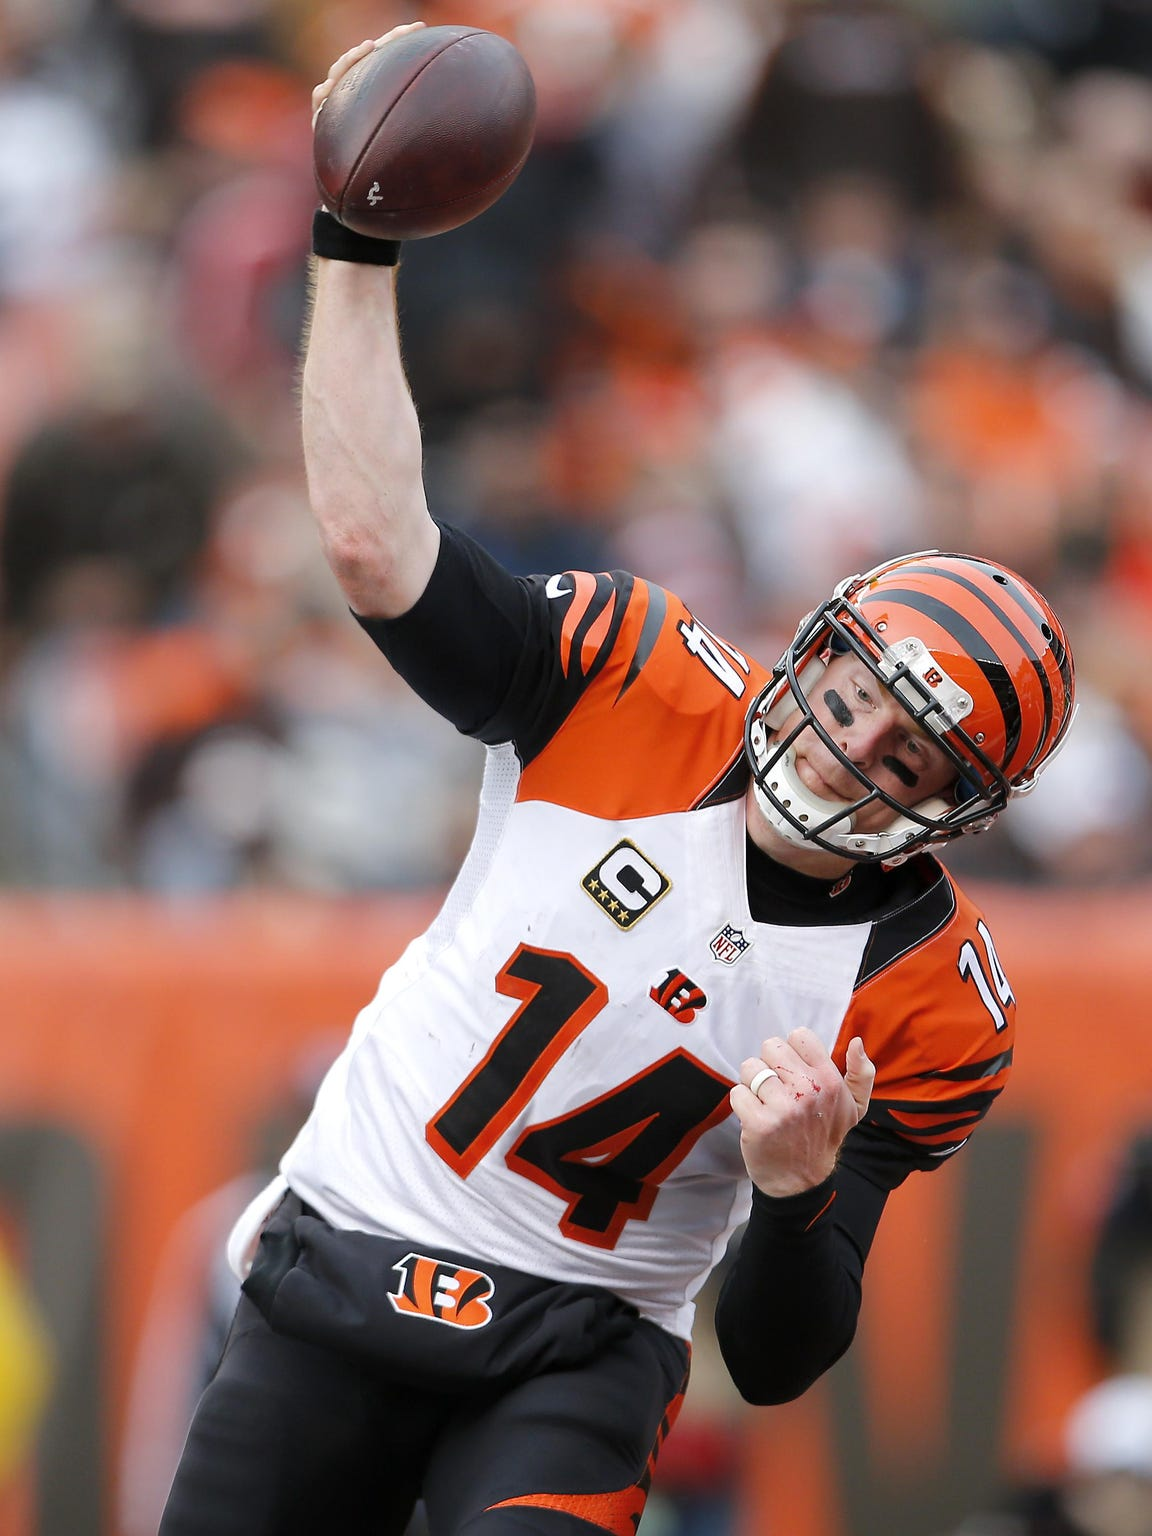 Andy Dalton spikes the ball after scoring a touchdown